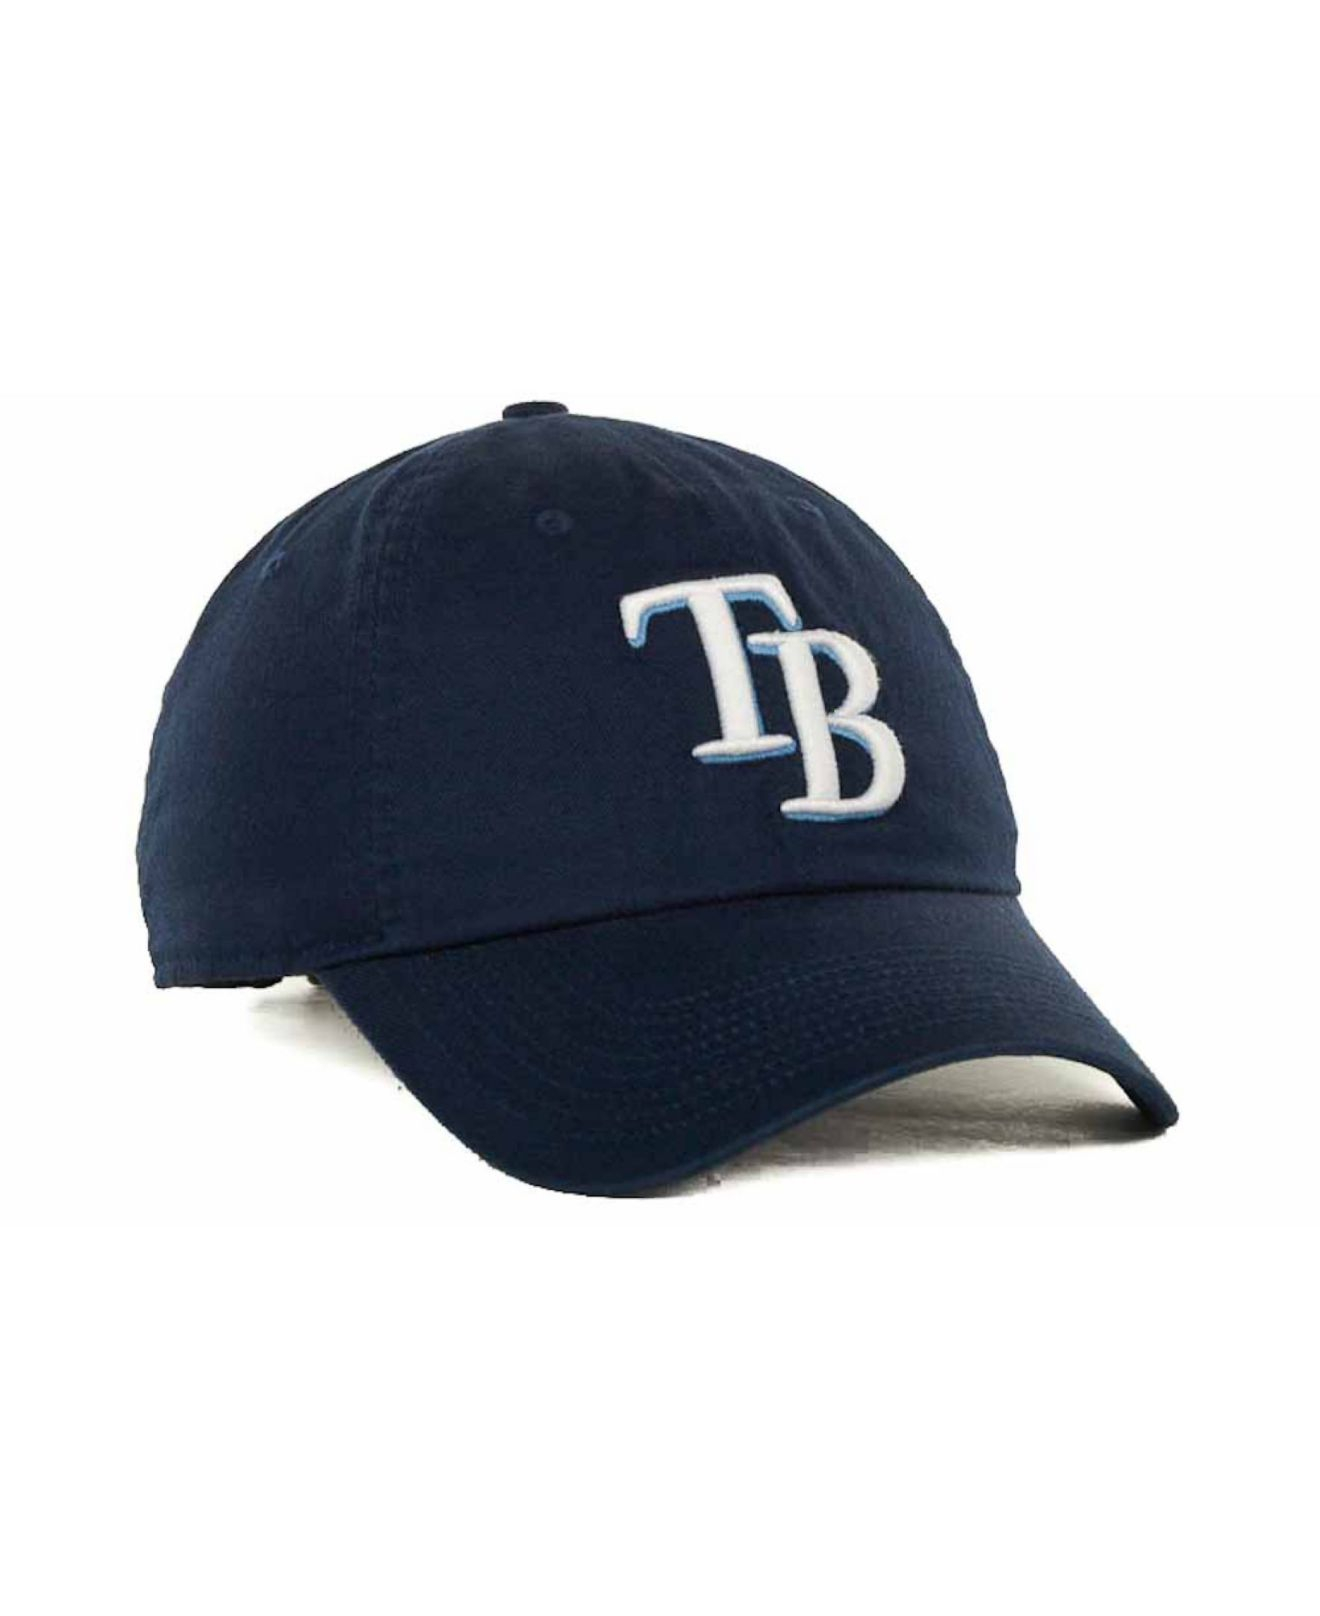 sports shoes 01199 f478e ... 50% off lyst nike tampa bay rays stadium cap in blue for men 3f50d 87d22